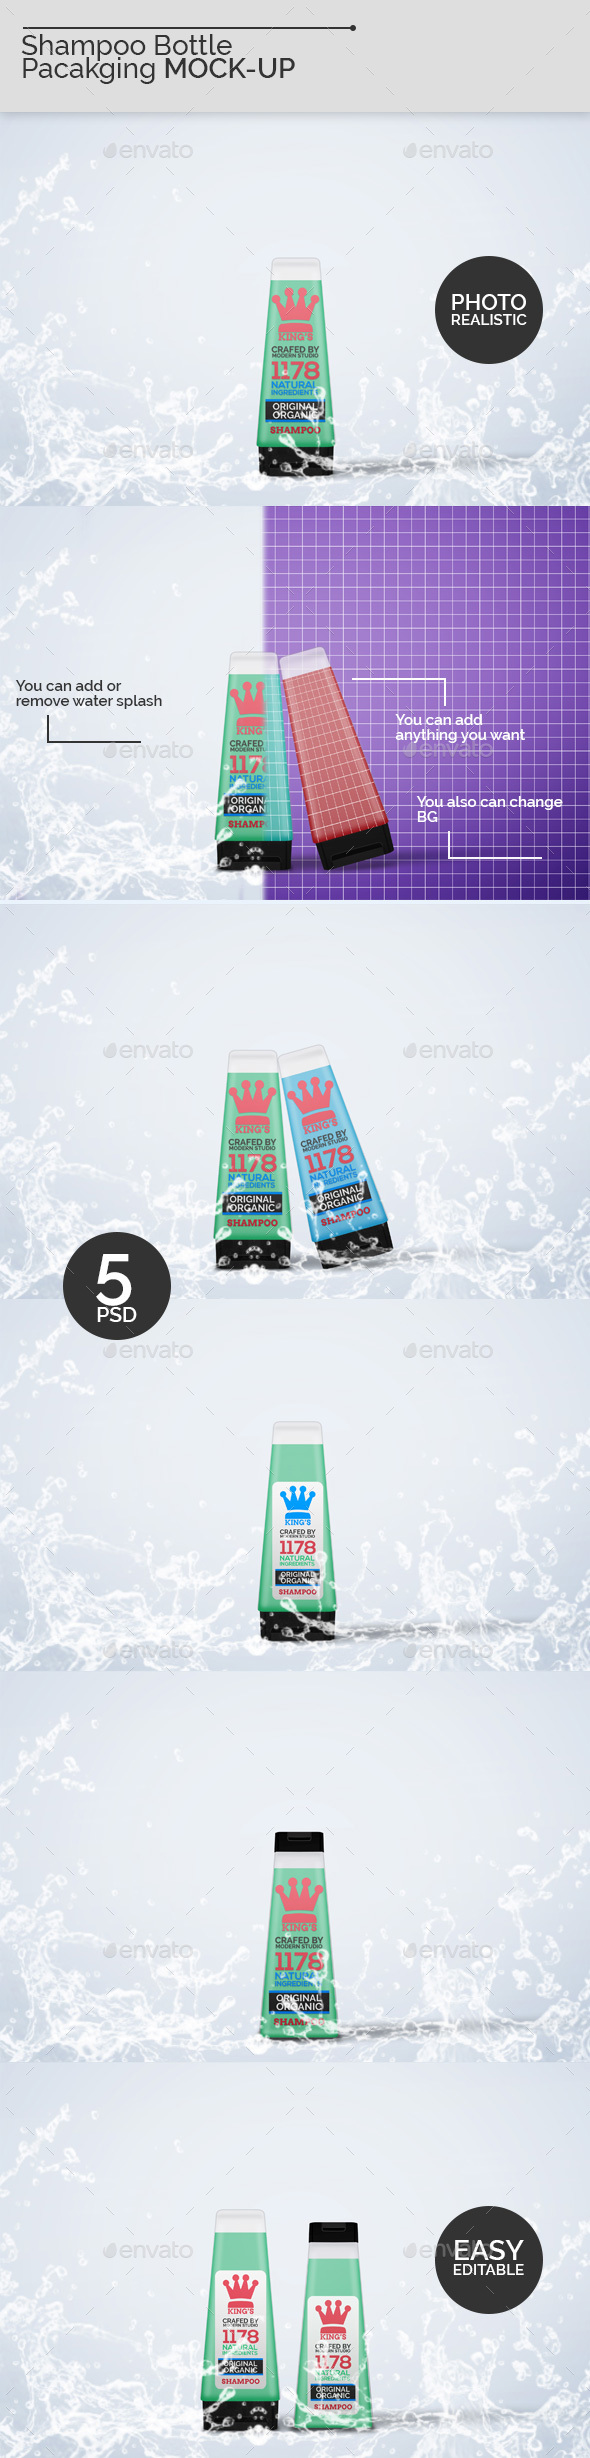 Shampoo Bottle Packaging Mock-Ups